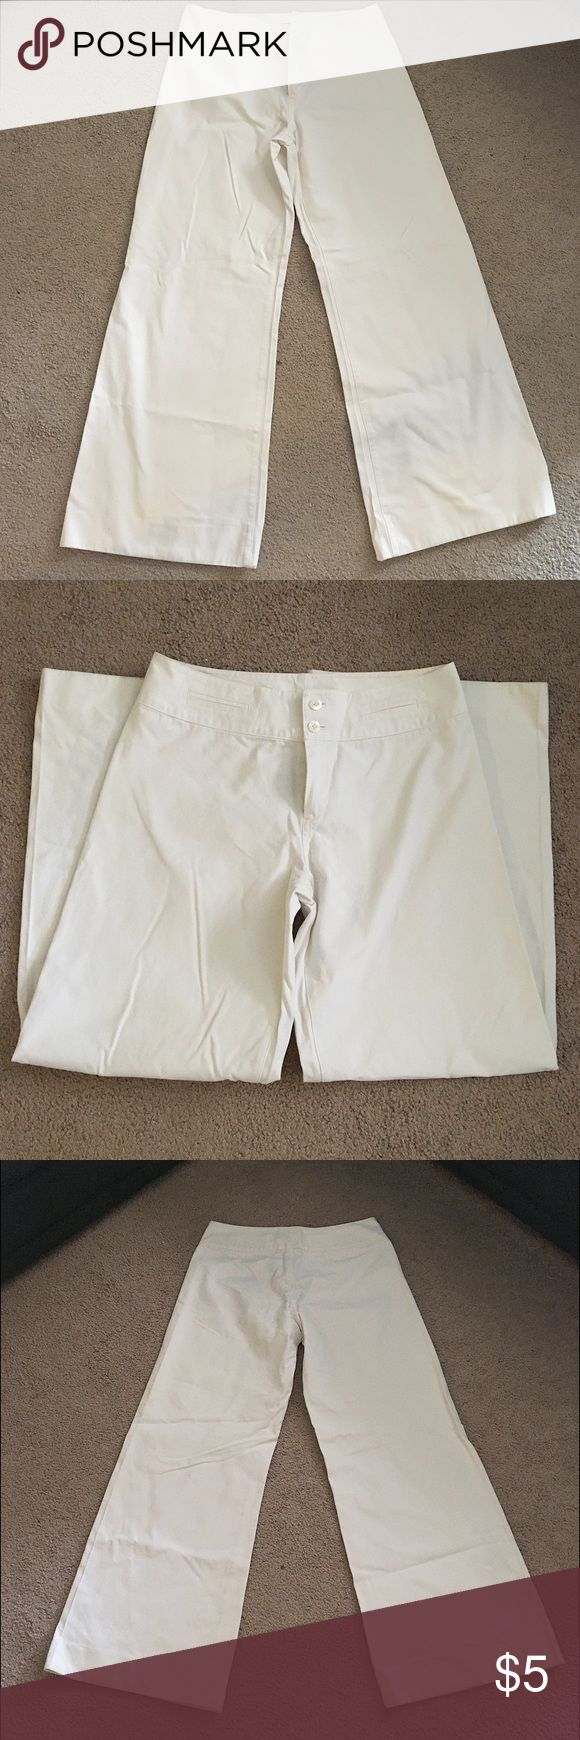 White Flare Pants Women's white flare pants with two buttons. High wasted and comfortable. Lightweight material - great for spring/summer. No trades! Polo by Ralph Lauren Pants Boot Cut & Flare